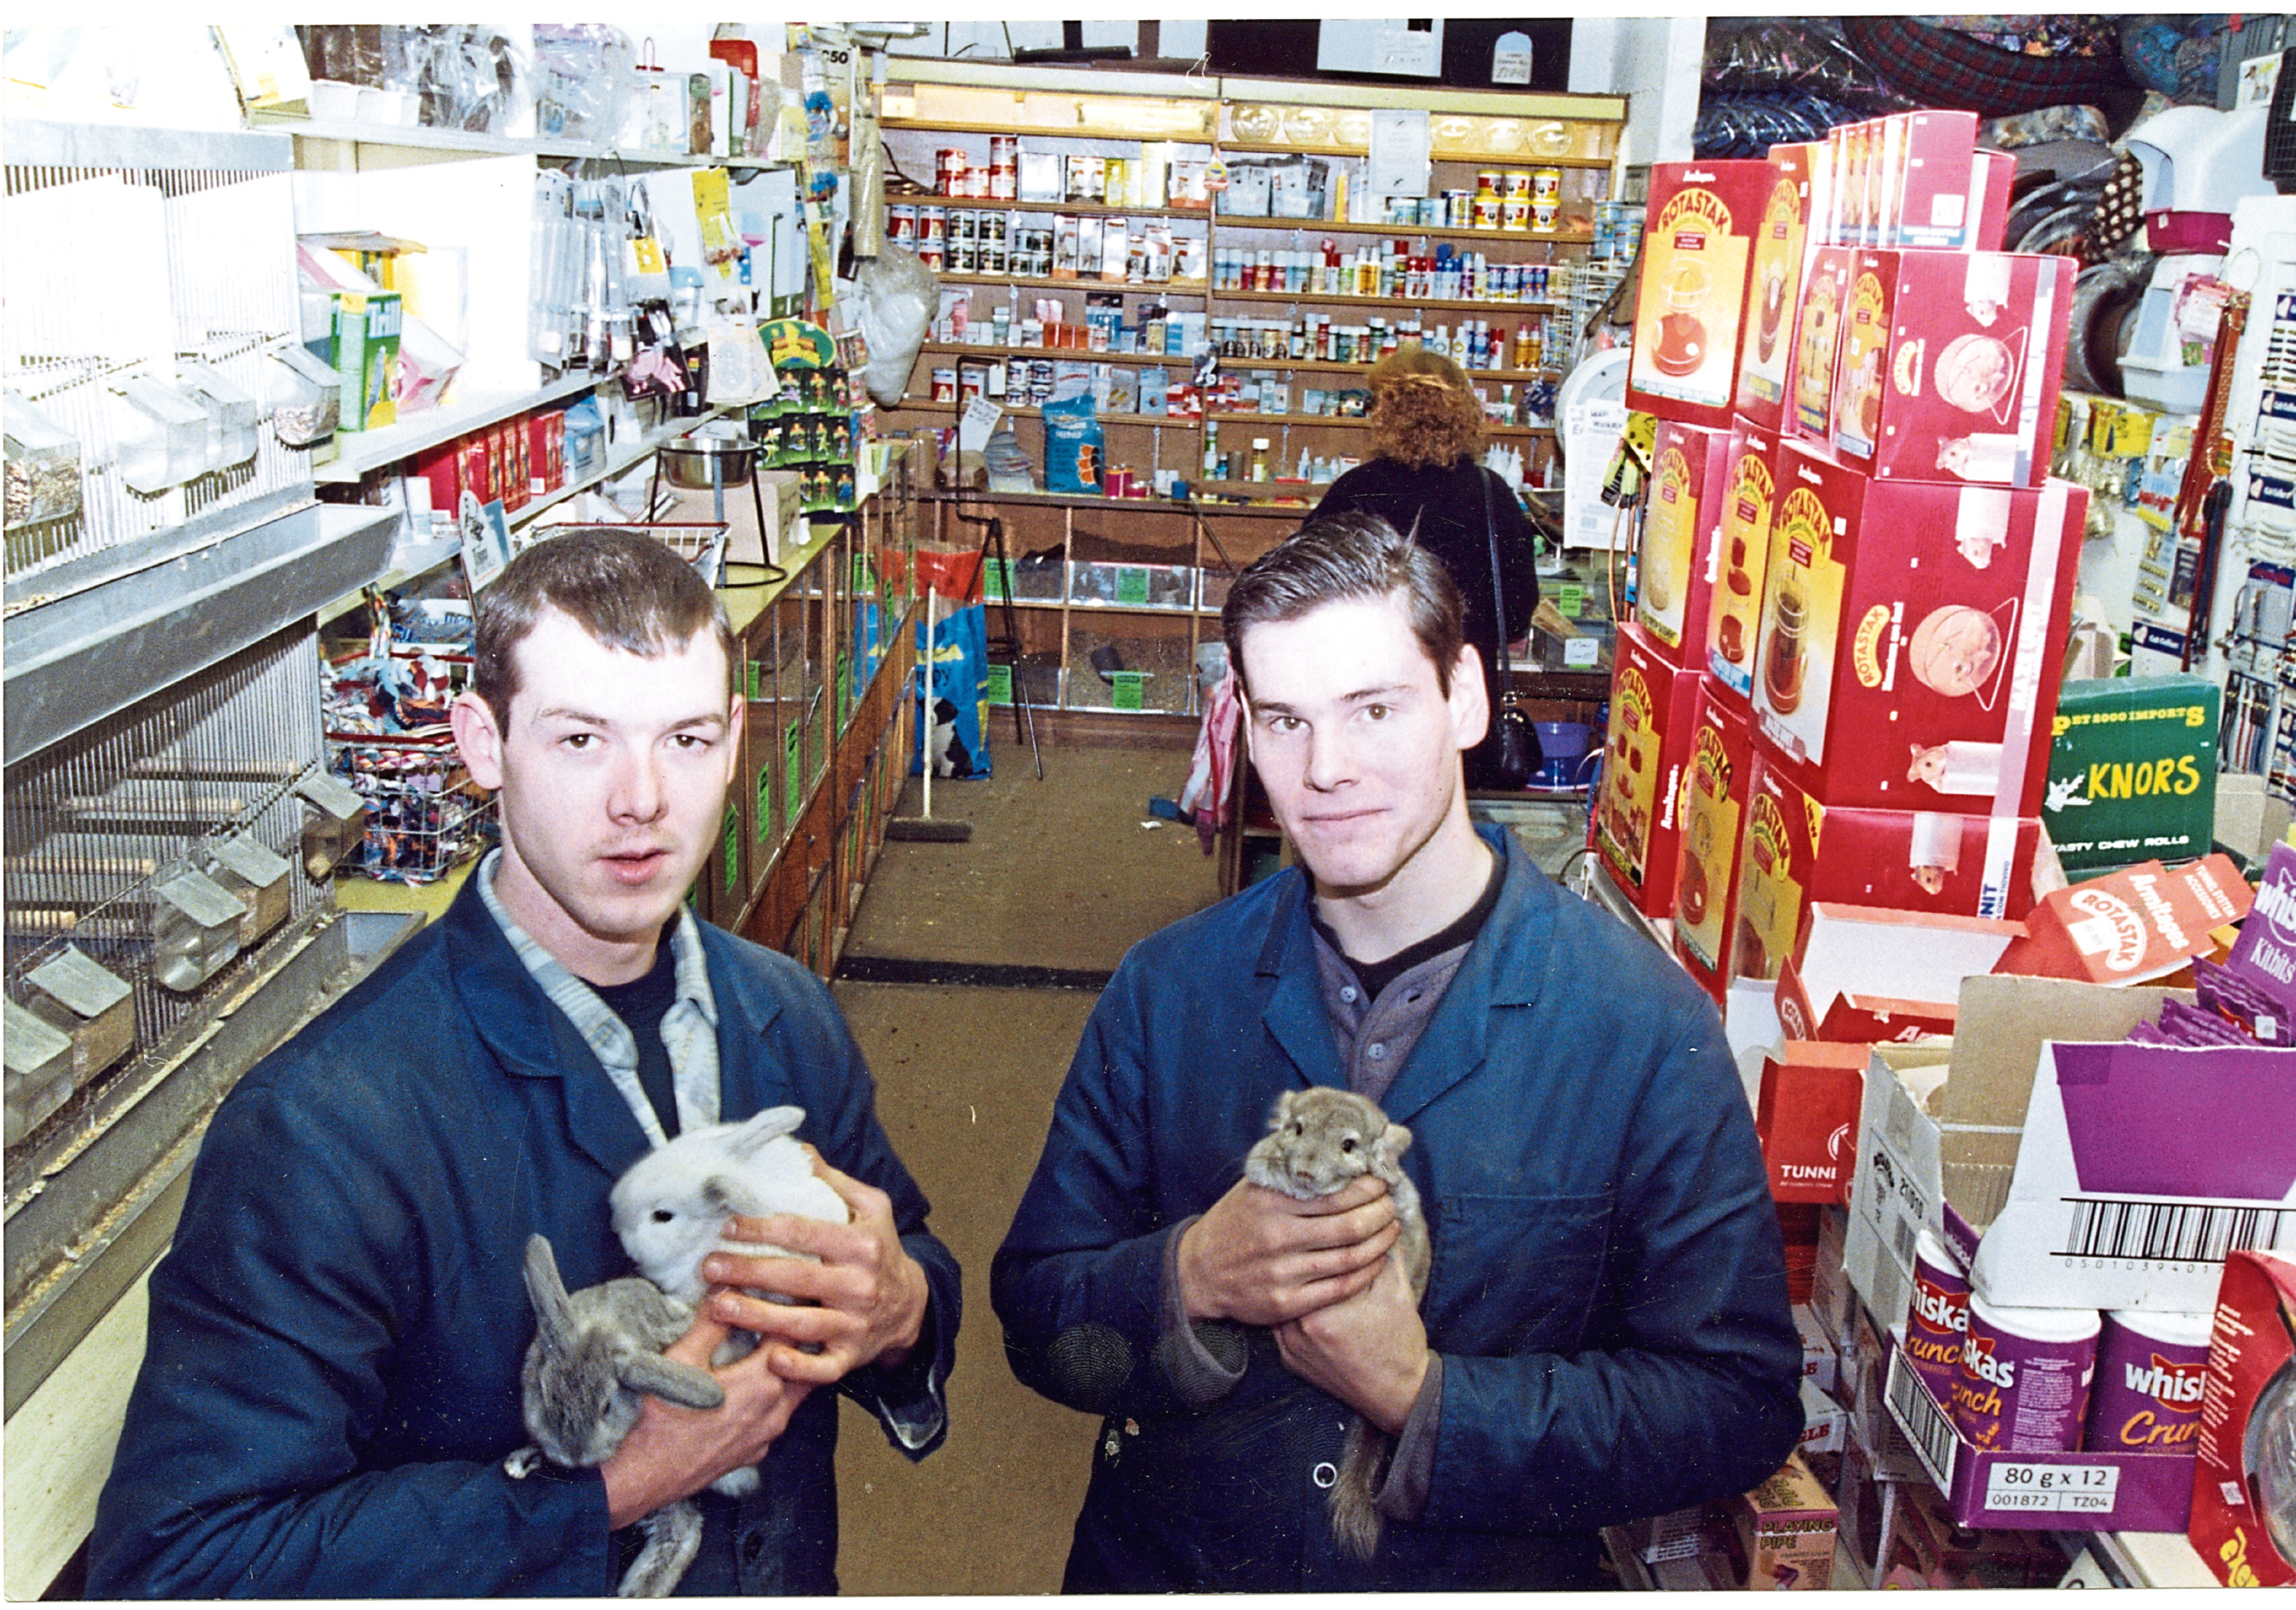 The staff from the Dog Food Shop in Dock Street have been identified.